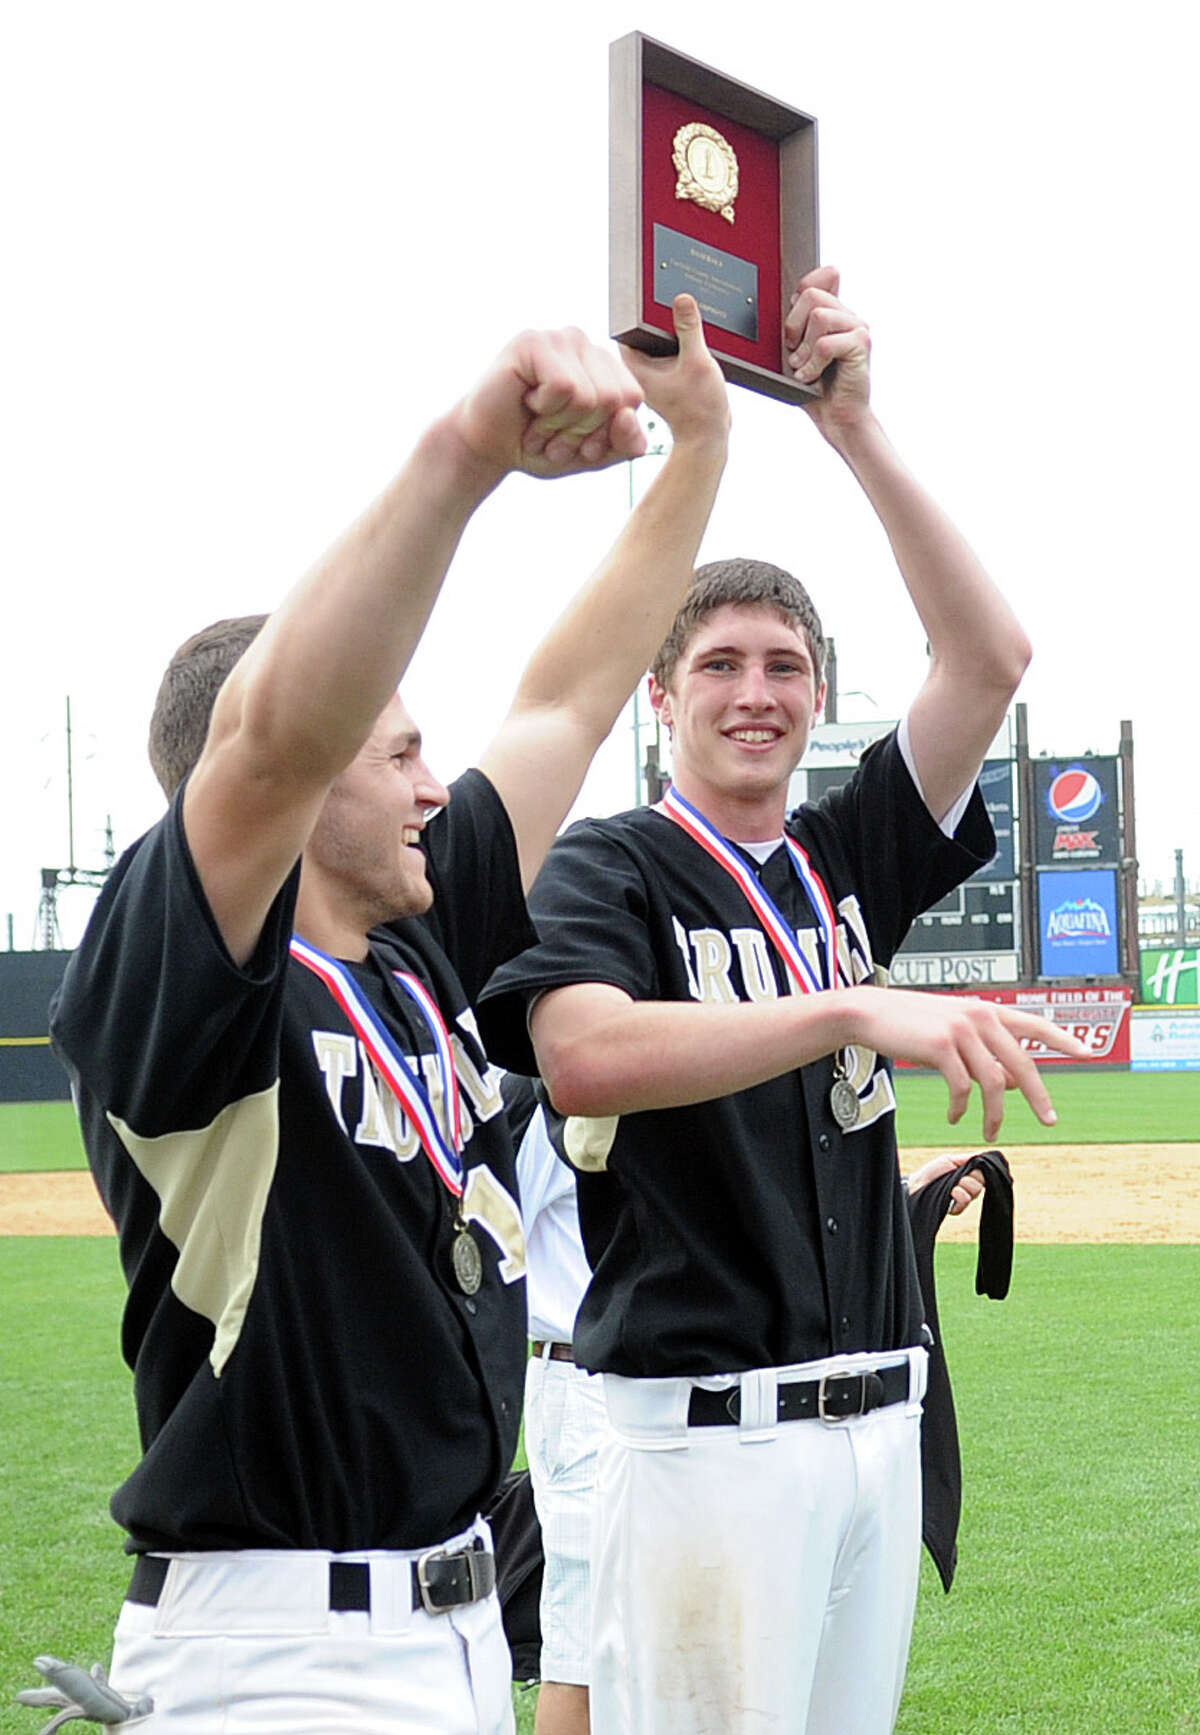 Trumbull's Brendan Moore, left, and Mike Yerina, right, hold up their team's trophy during Saturday's FCIAC baseball championship game at the Ballpark at Harbor Yard in Bridgeport on May 26, 2012.